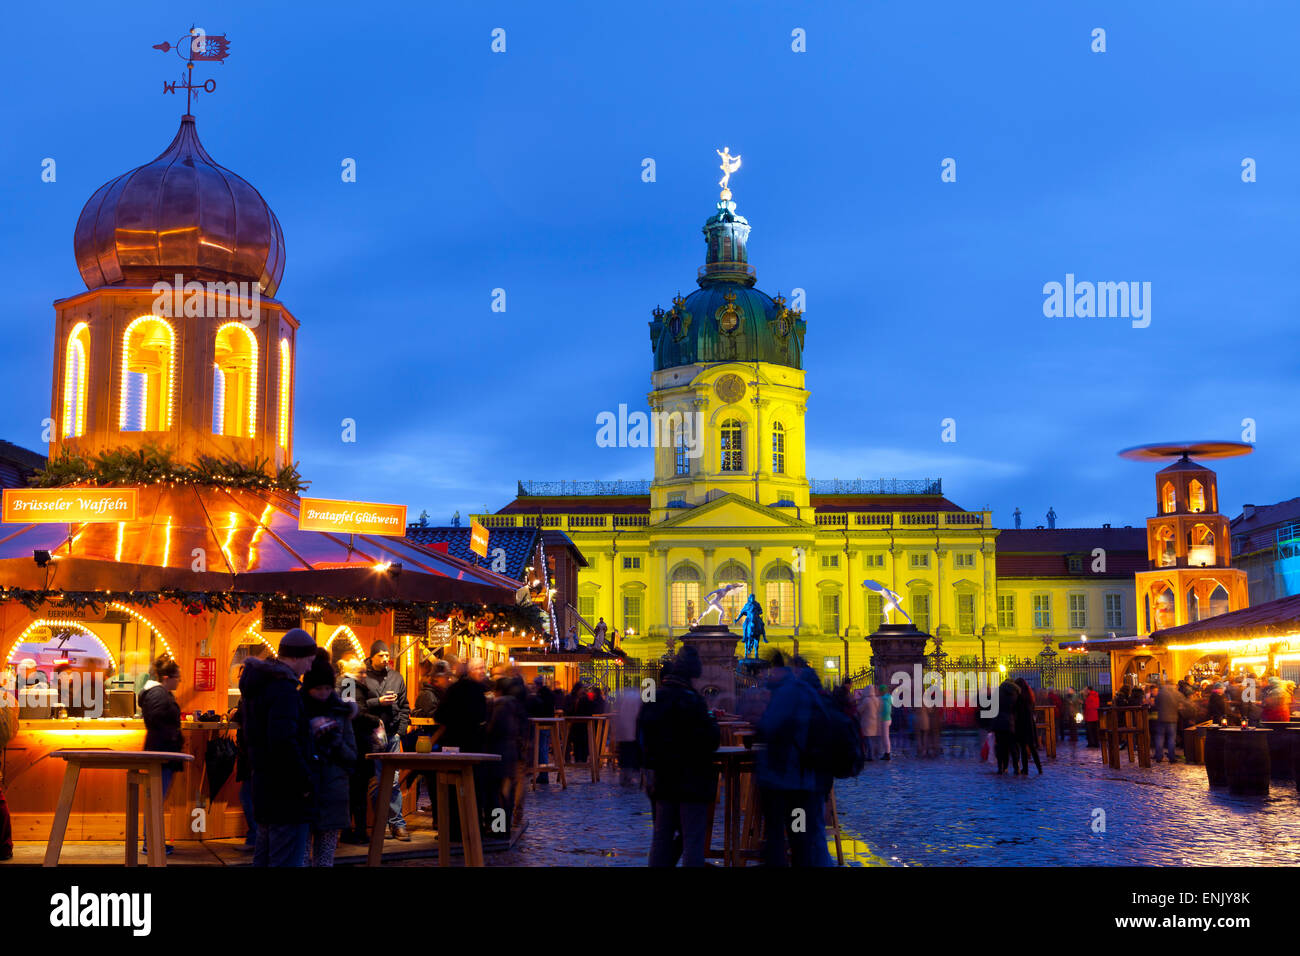 Christmas Market in front of Charlottenburg Palace, Berlin, Germany, Europe Stock Photo